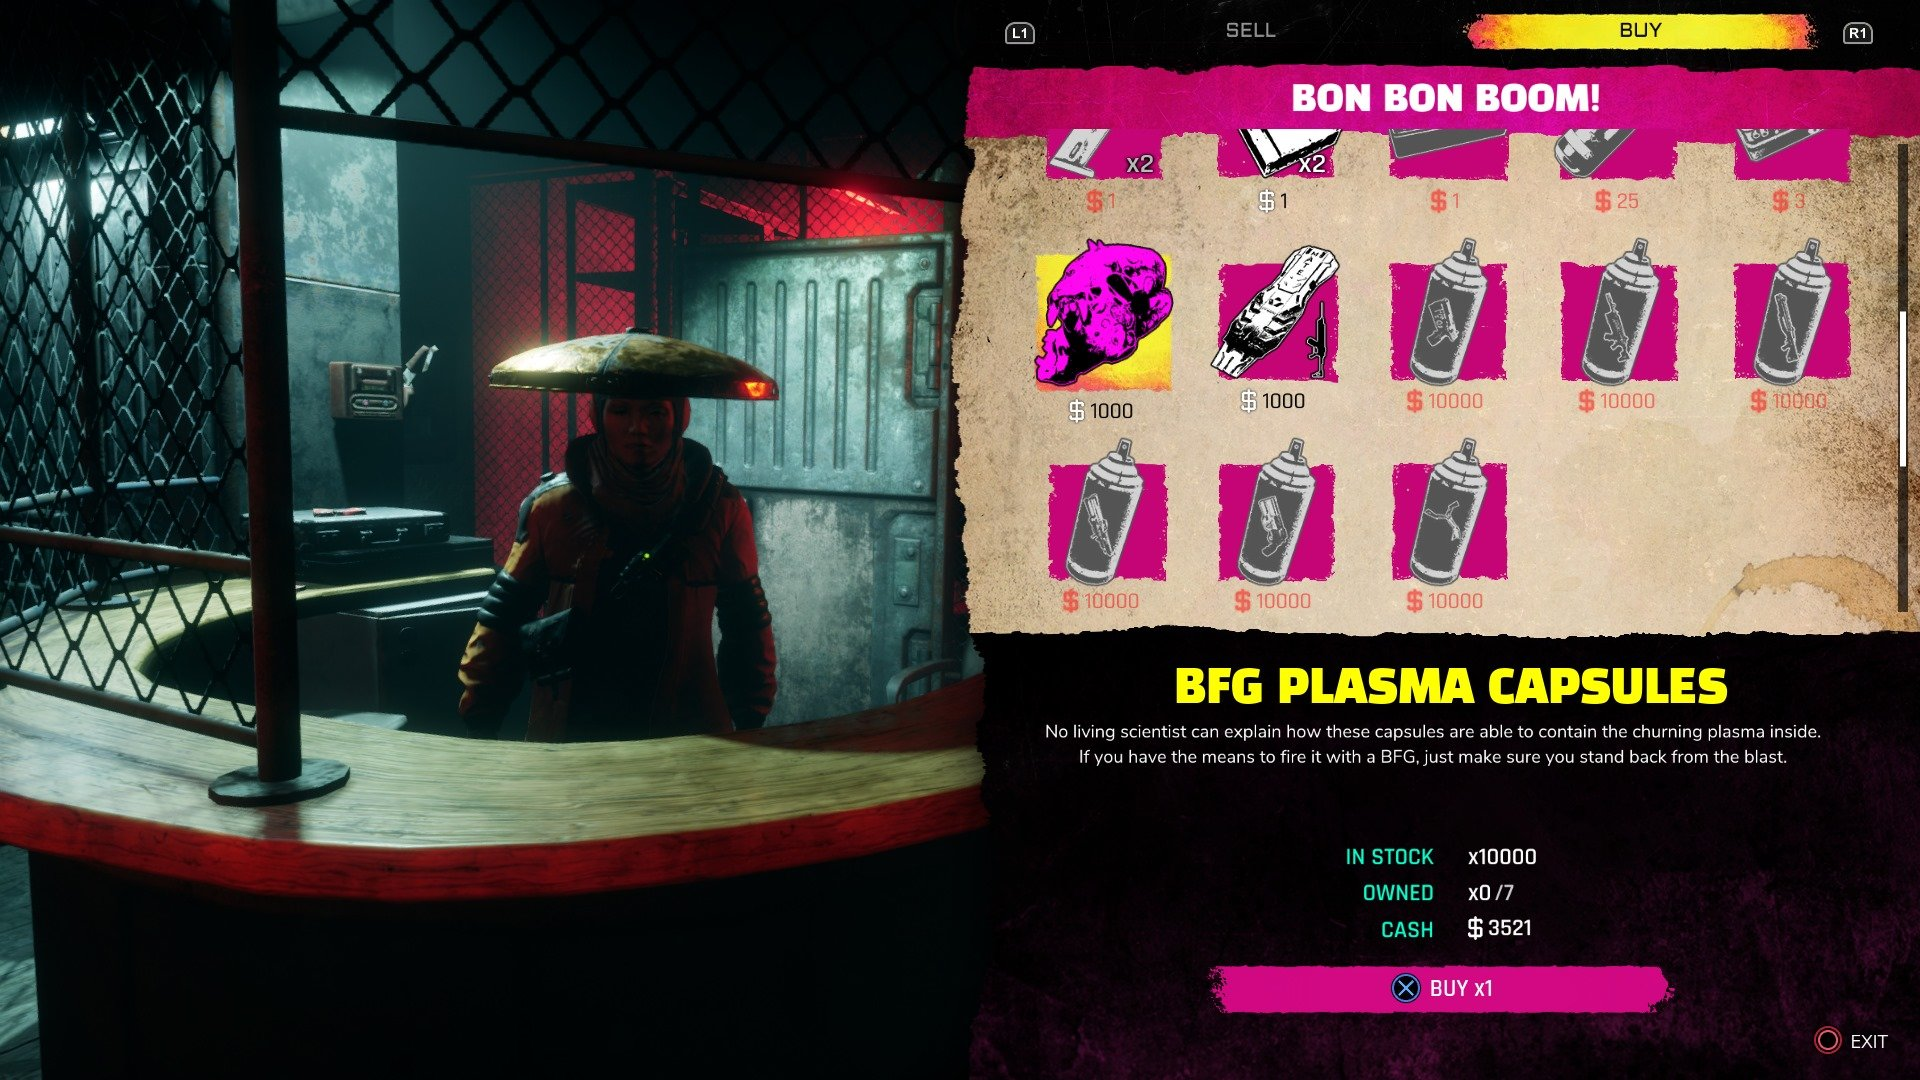 To get more BFG 9000 ammo you'll need to visit the Bon Bon Boom shop in Wellspring and purchase it for $1,000 per round.